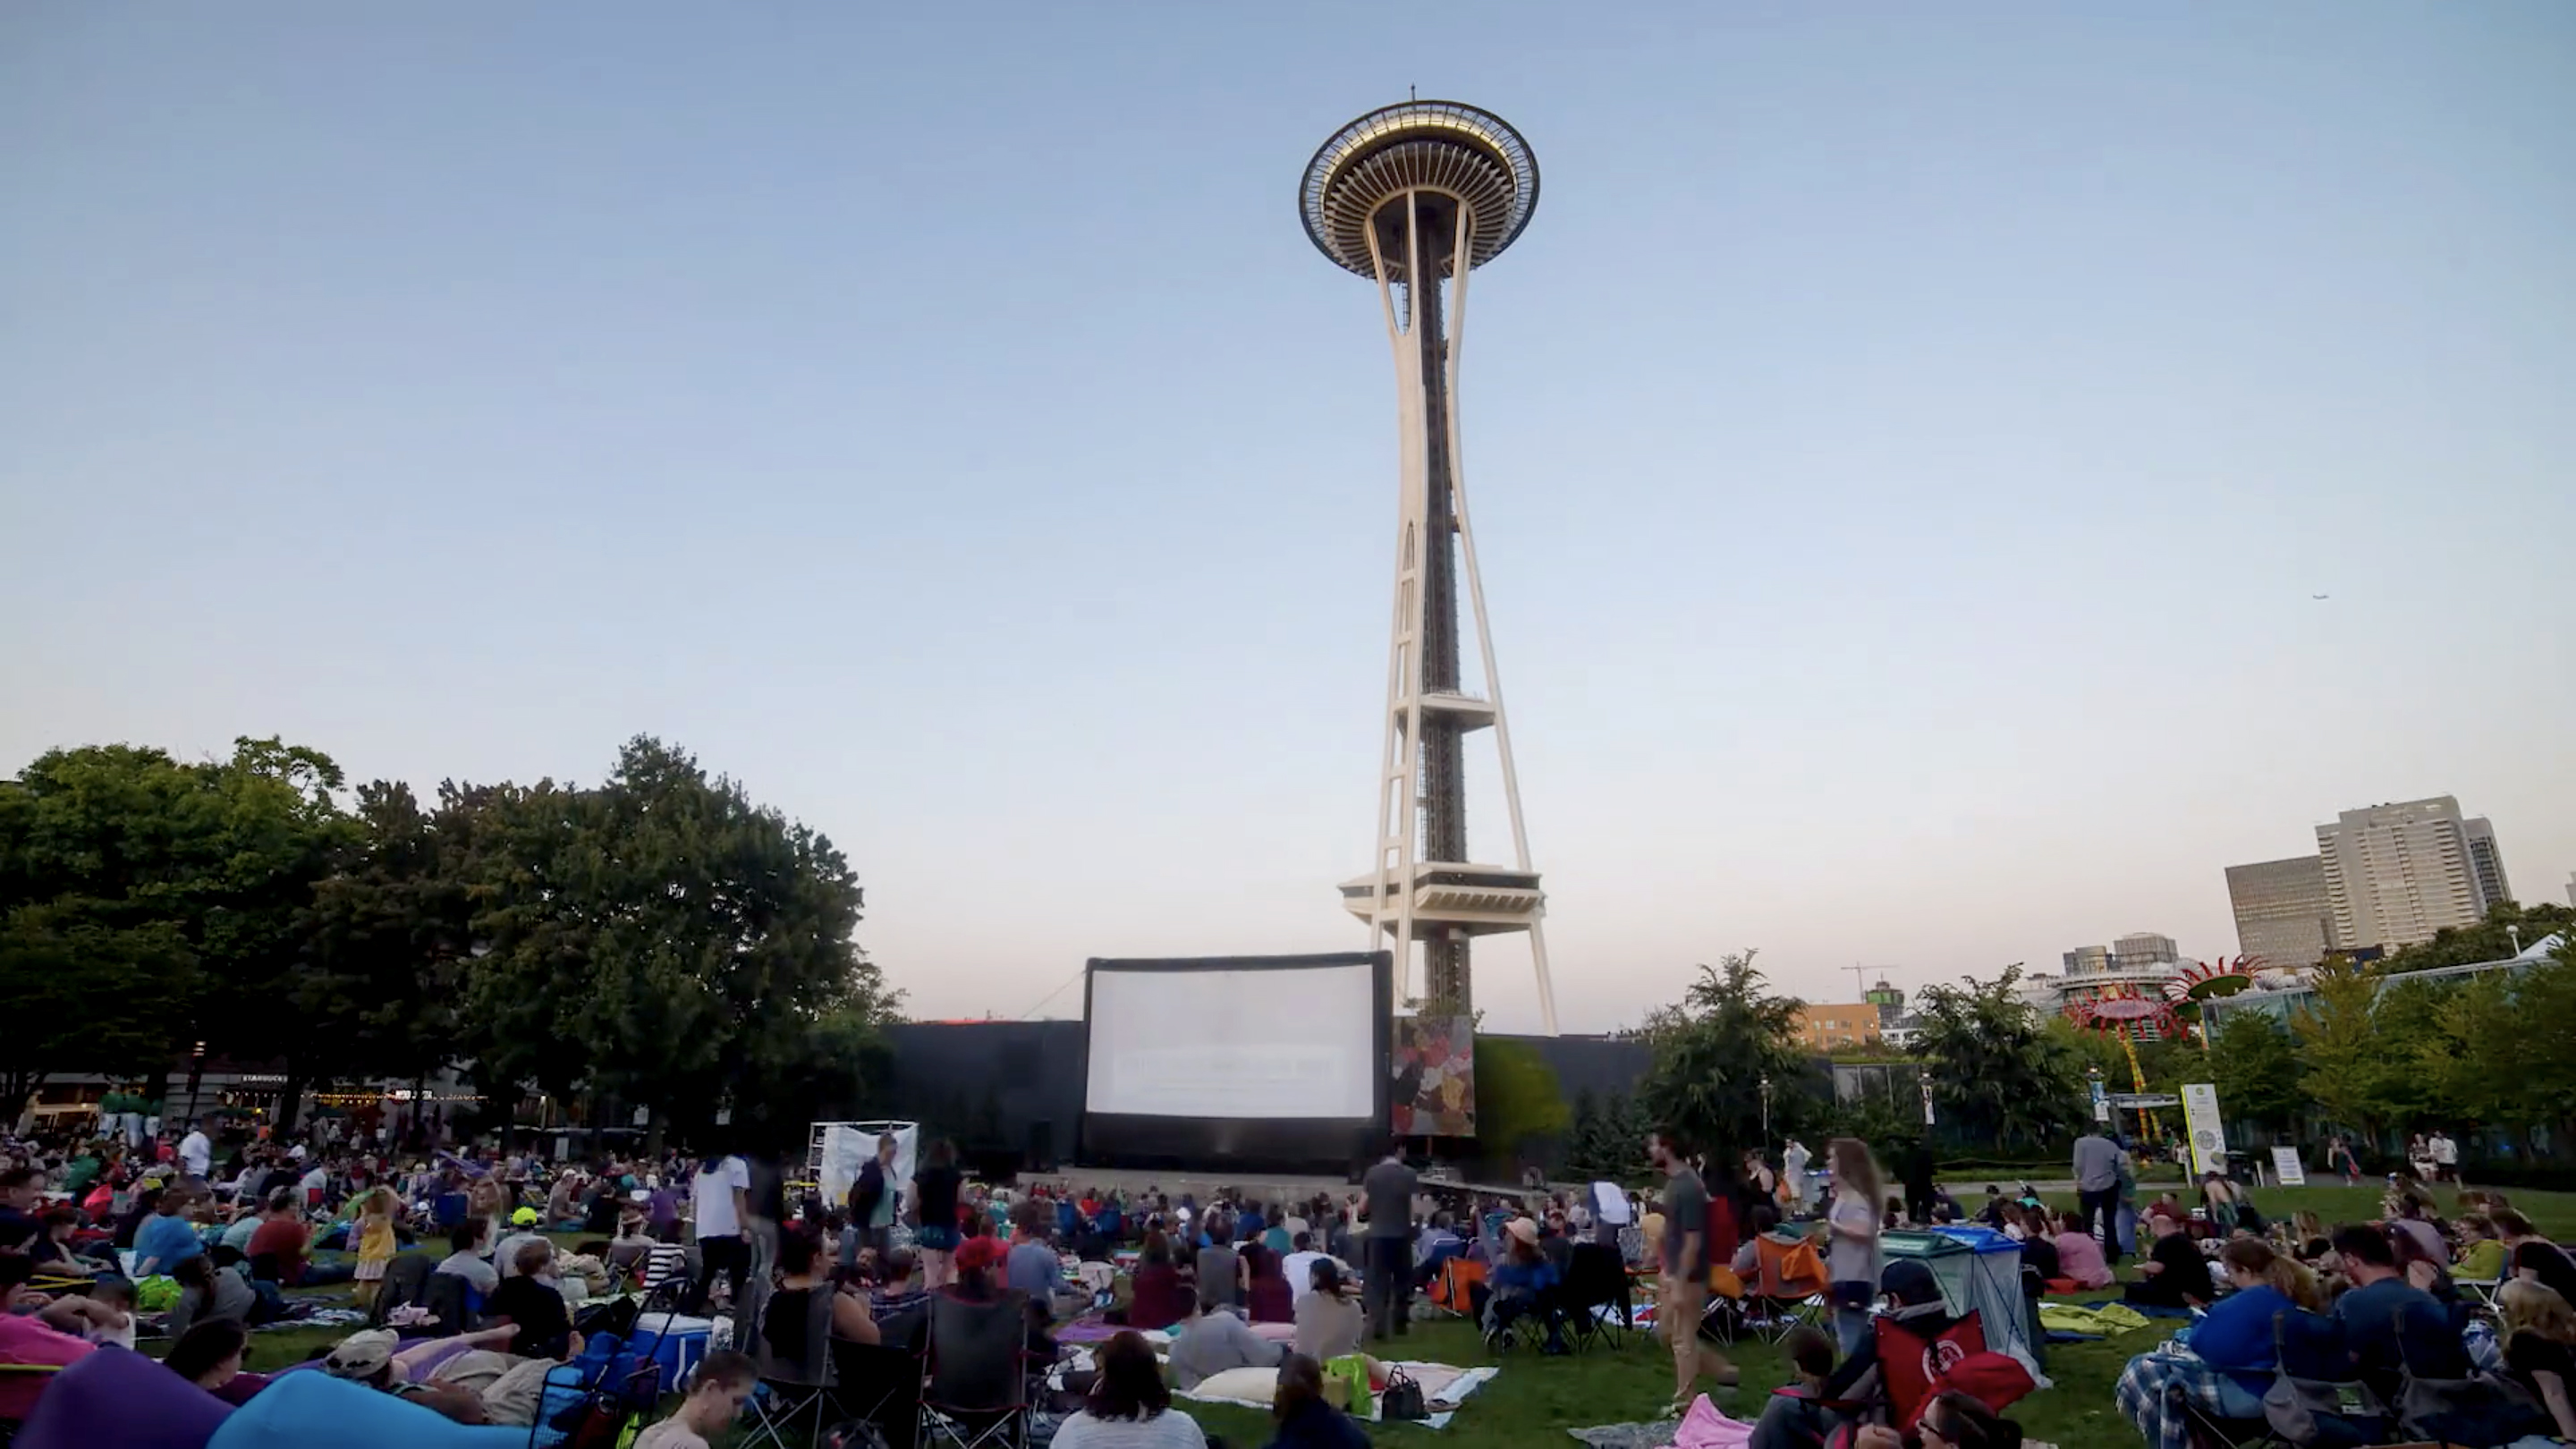 Seattle Outdoor Movie Guide - Summer 2019